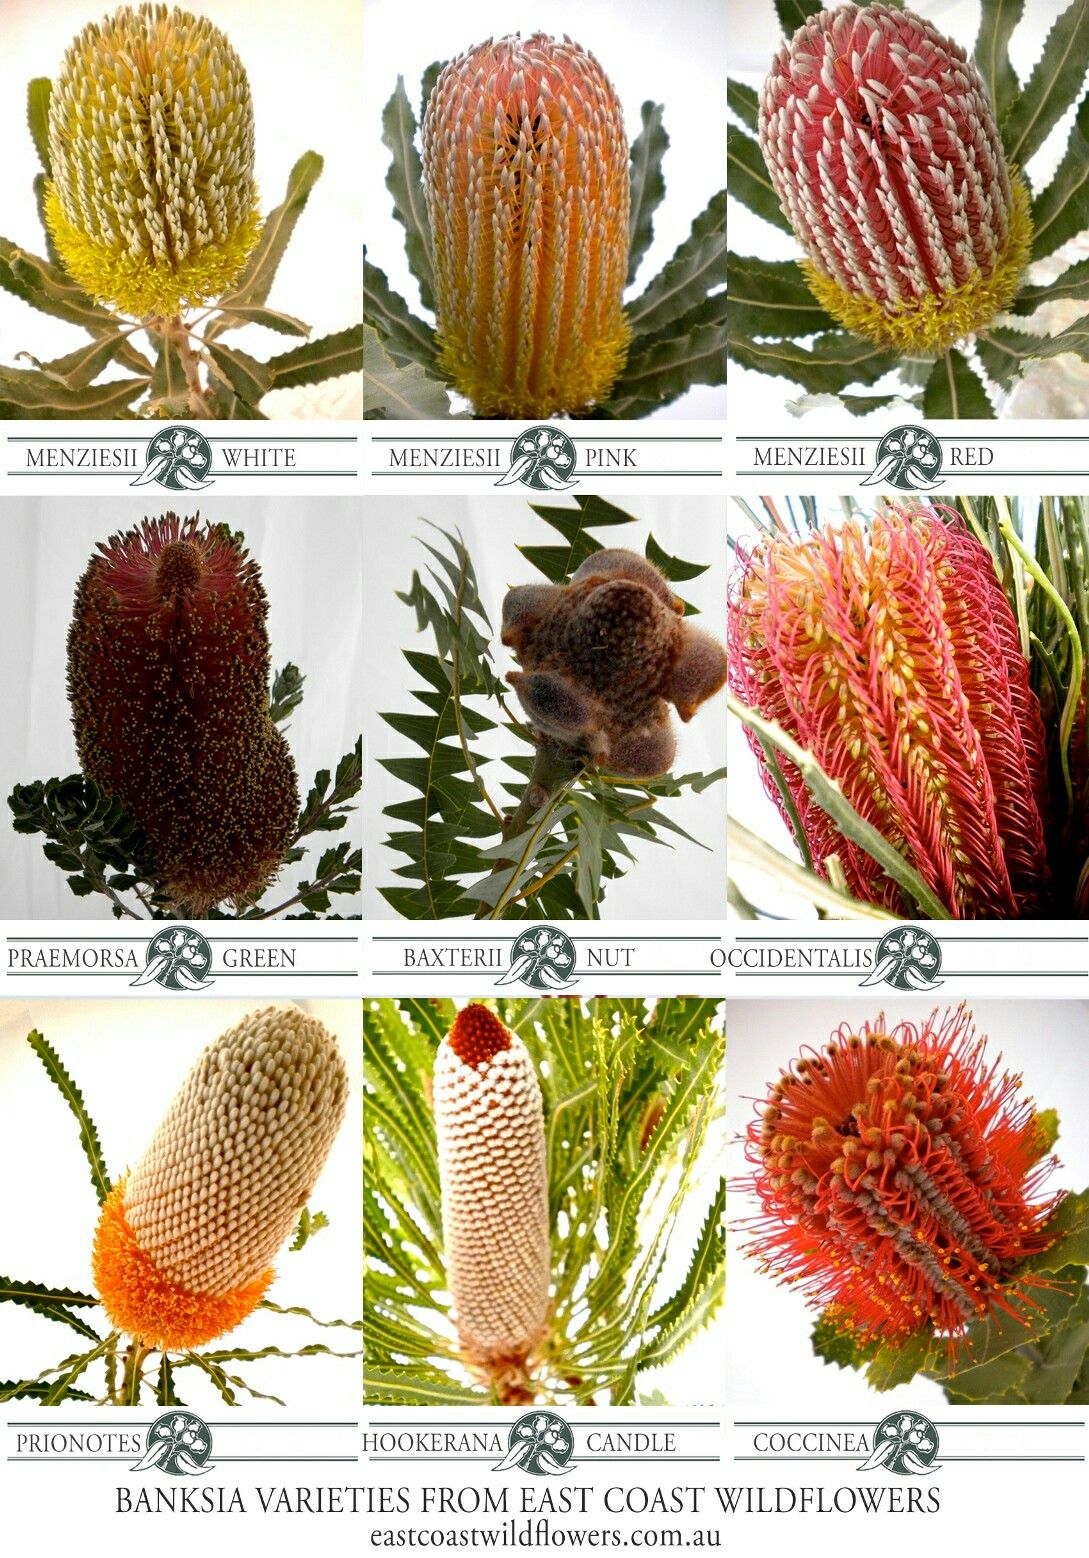 Nine Of Our Most Popular Banksia Varieties That We Grow And Wholesale In Nsw Native Australian B Australian Flowers Australian Native Flowers Protea Flower